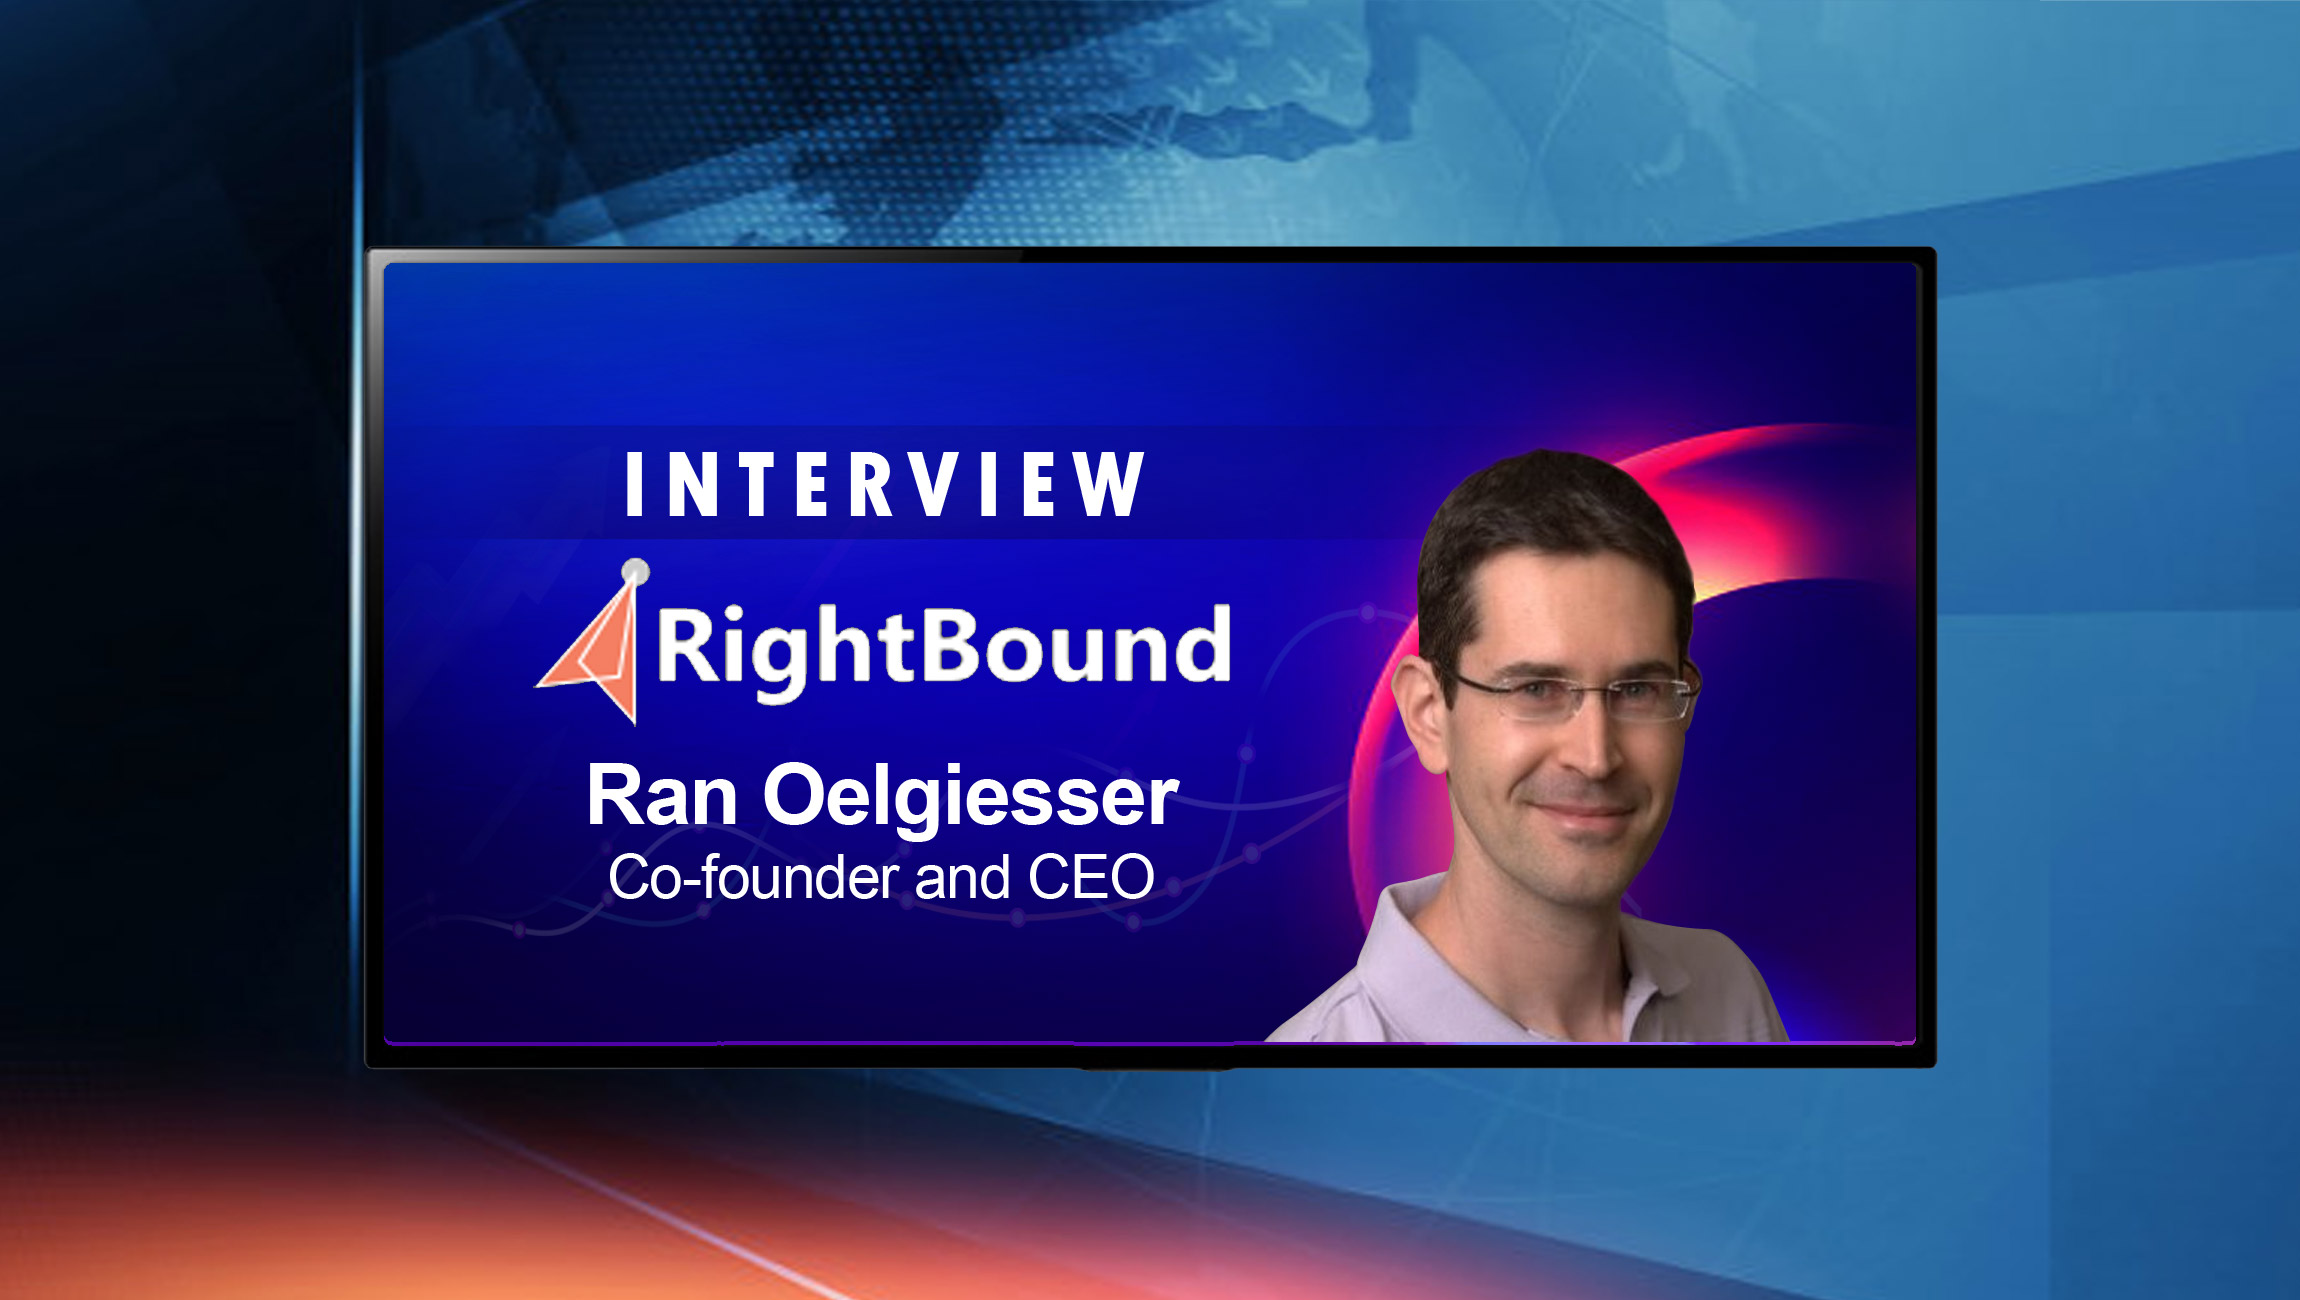 SalesTechStar Interview with Ran Oelgiesser, Co-founder and CEO of RightBound